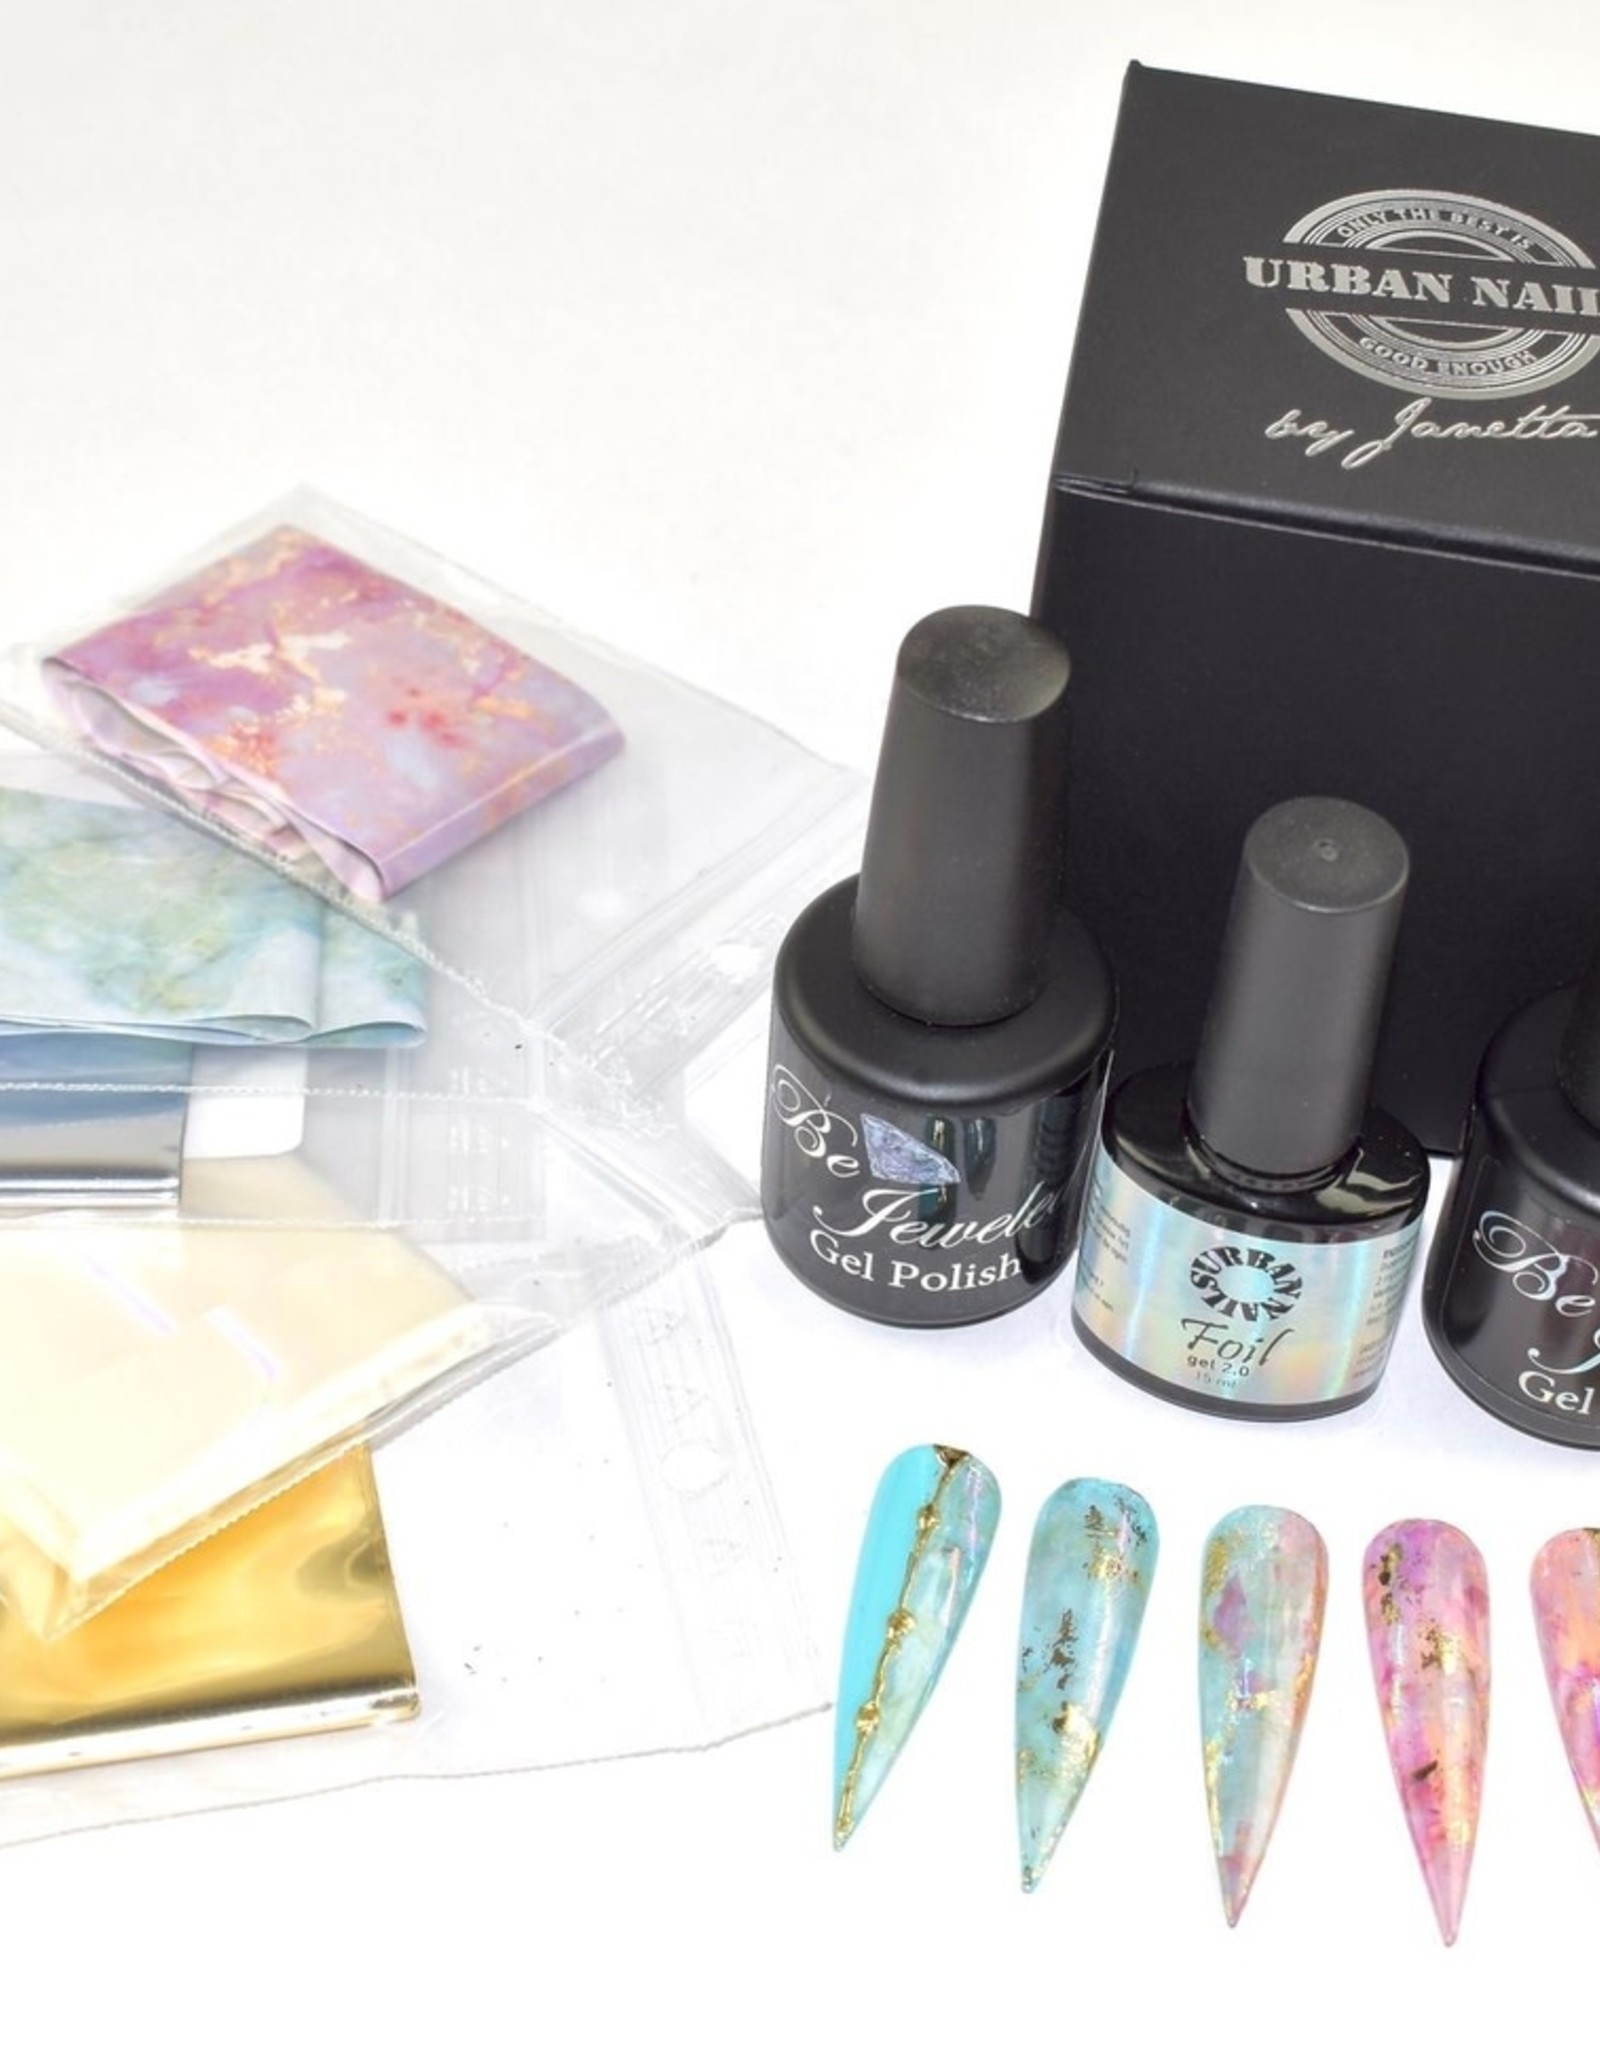 Urban Nails Marmer Kit